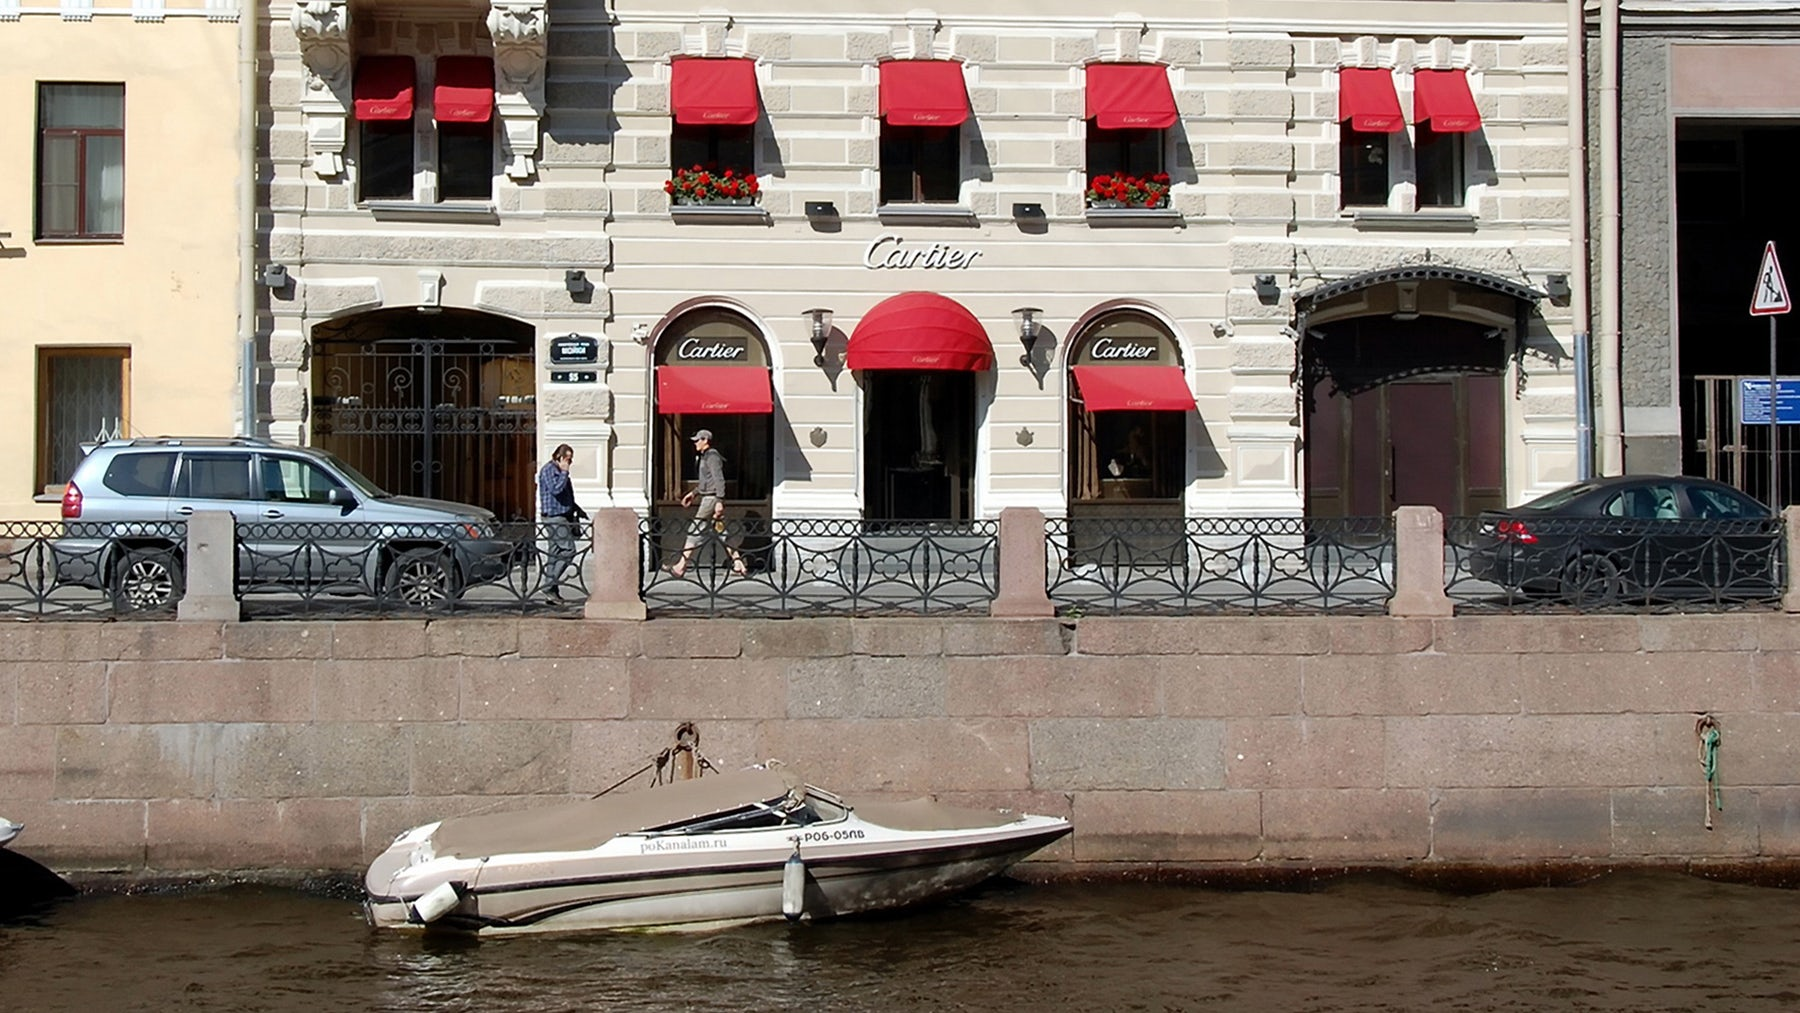 Cartier boutique on the Moyka river in Russia | Source: Shutterstock